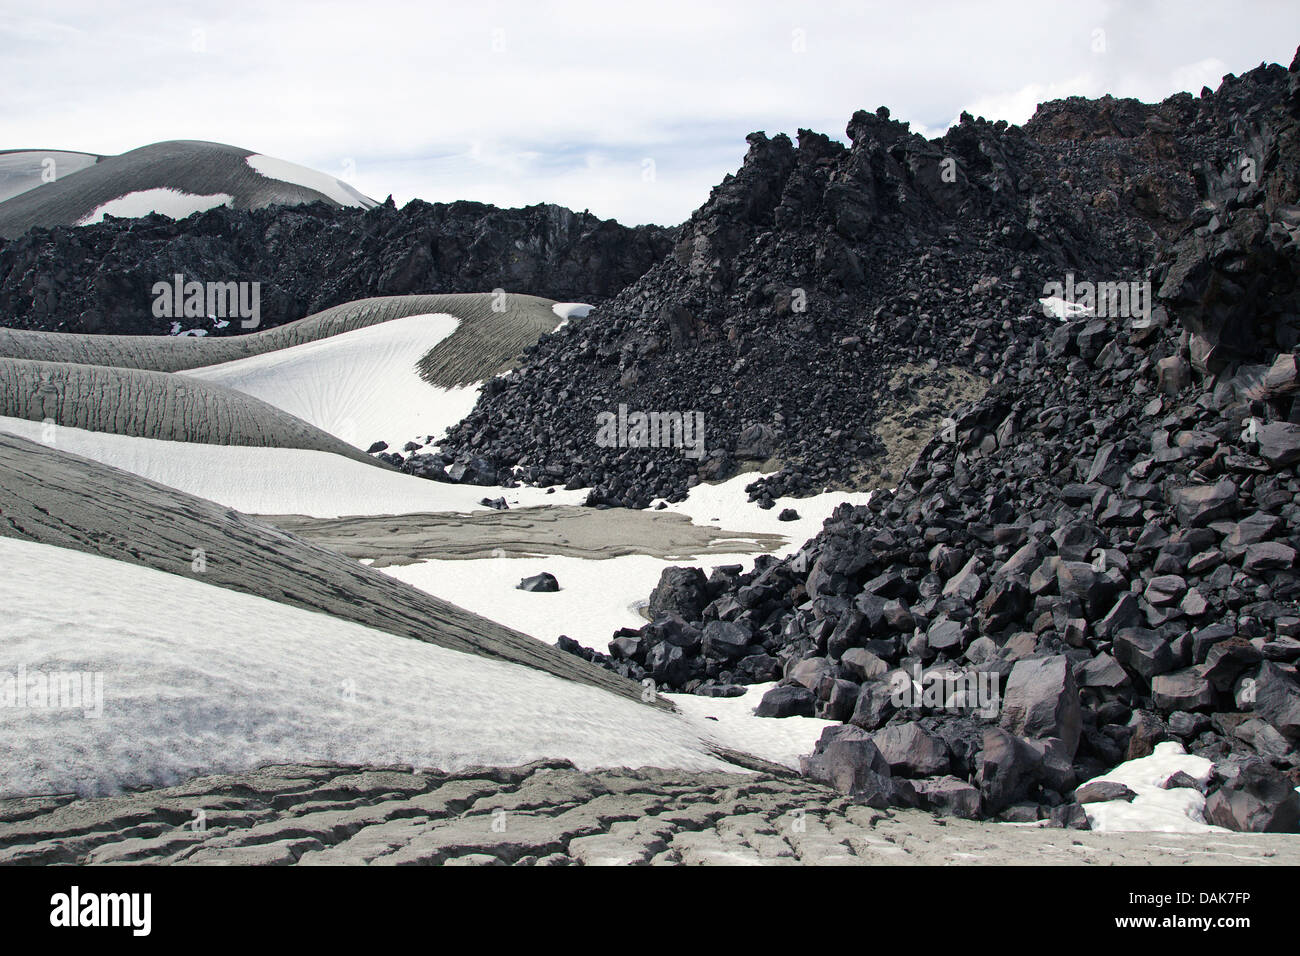 snow, volcanic ashes and lava at Cordon Caulle, Puyehue, Chile, Patagonia Stock Photo